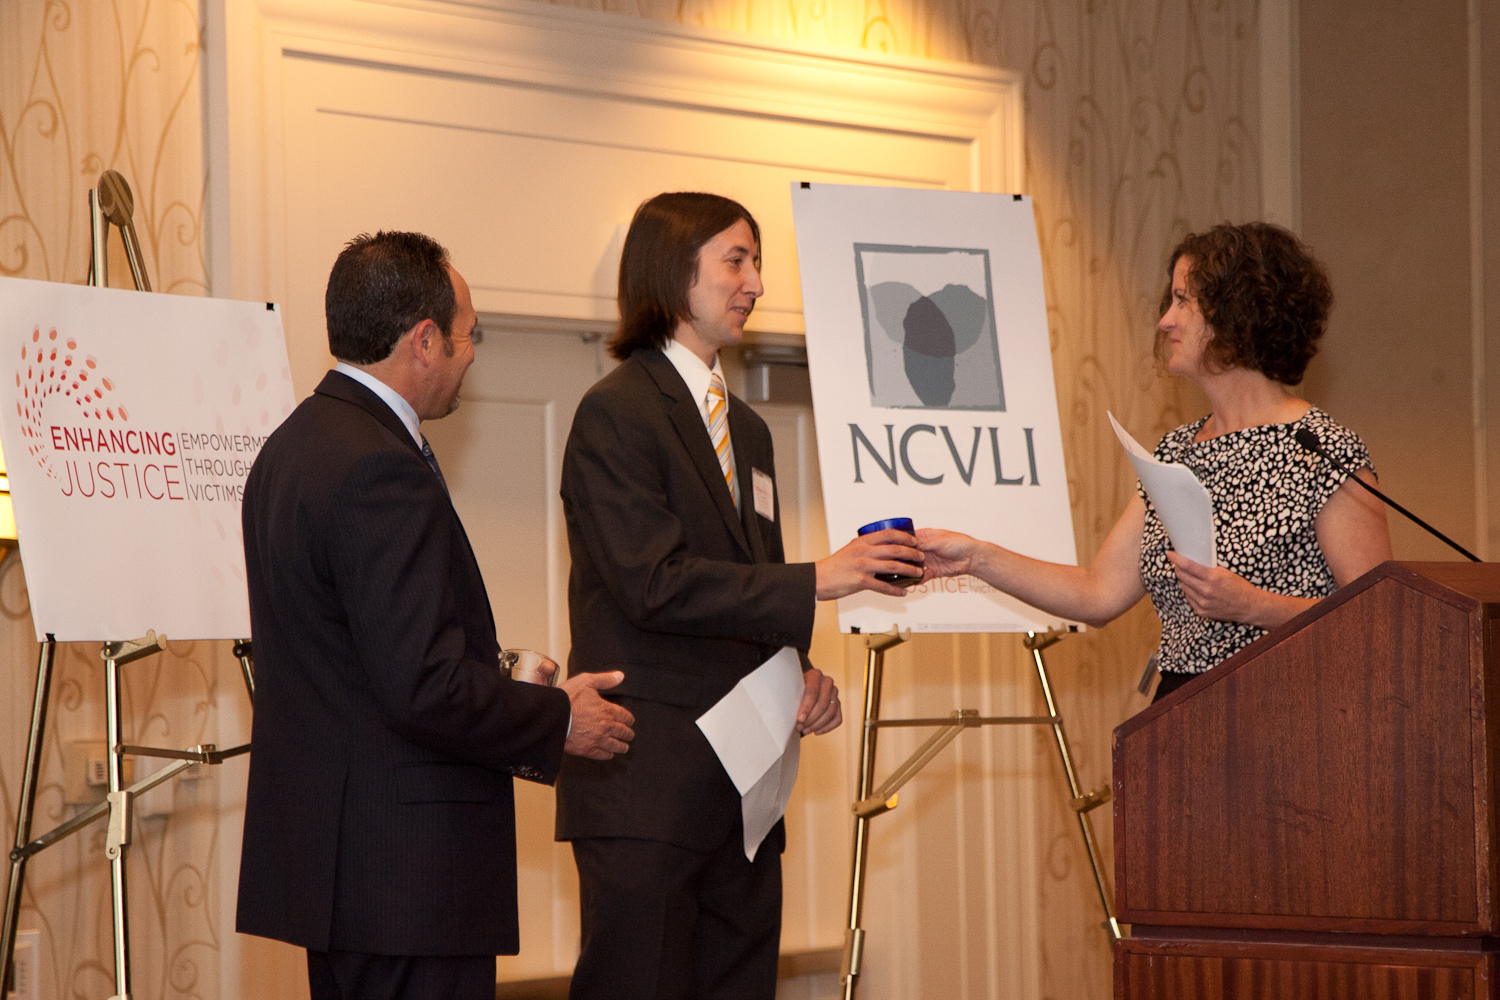 Law Student Matthew Merryman accepts NCVLI's Volunteer of the Year Award from NCVLI Executive Director Meg Garvin.